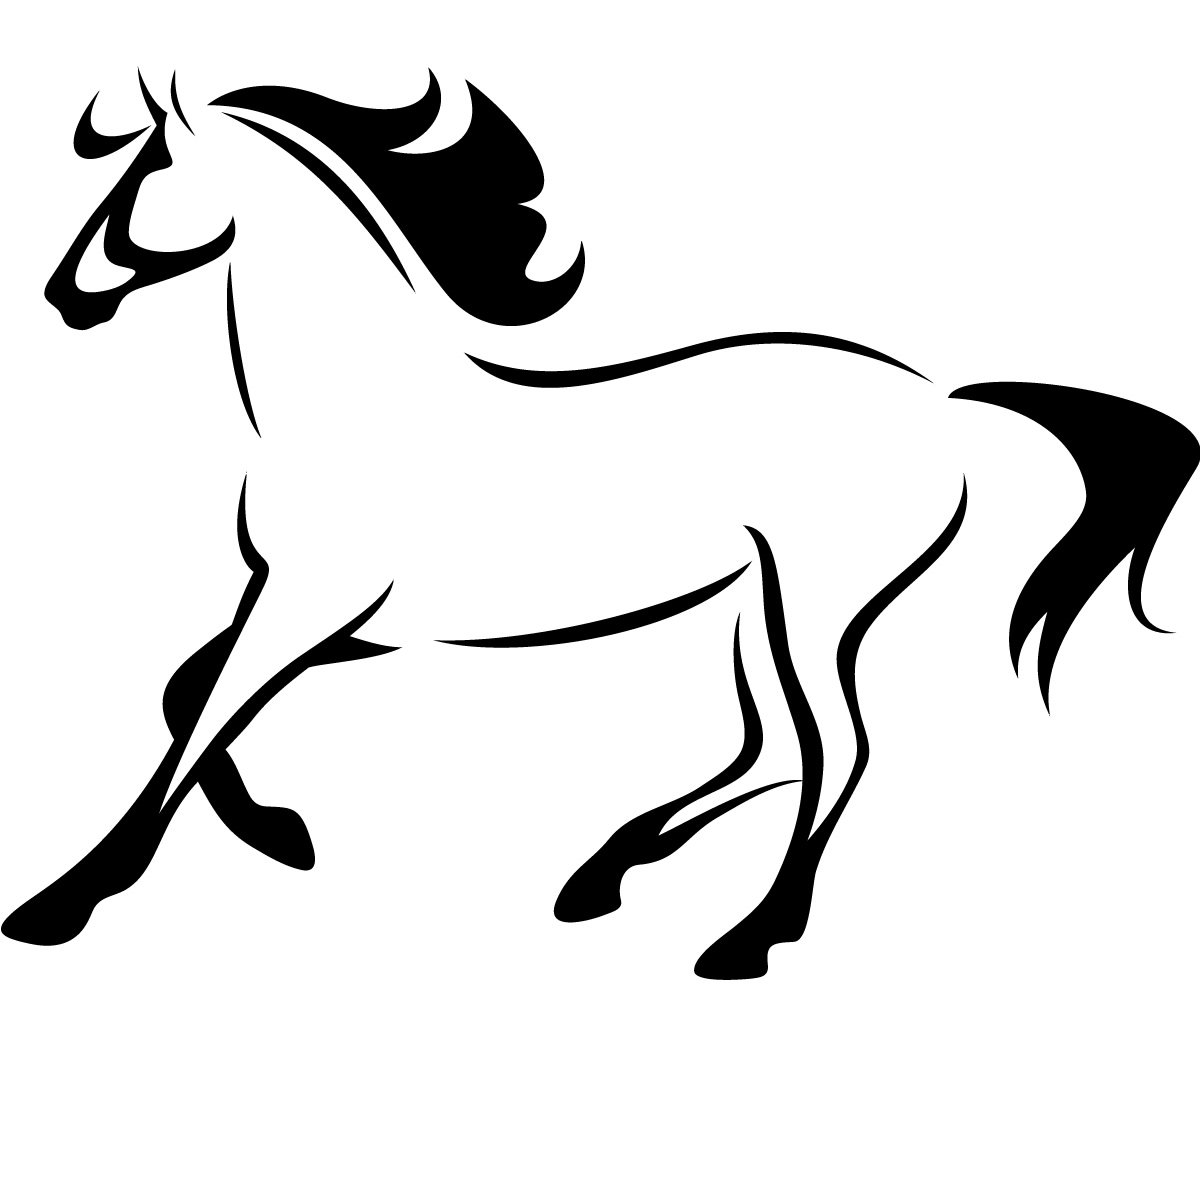 Horse Outline Running Animals Wall Art Decal Wall Stickers Transfers